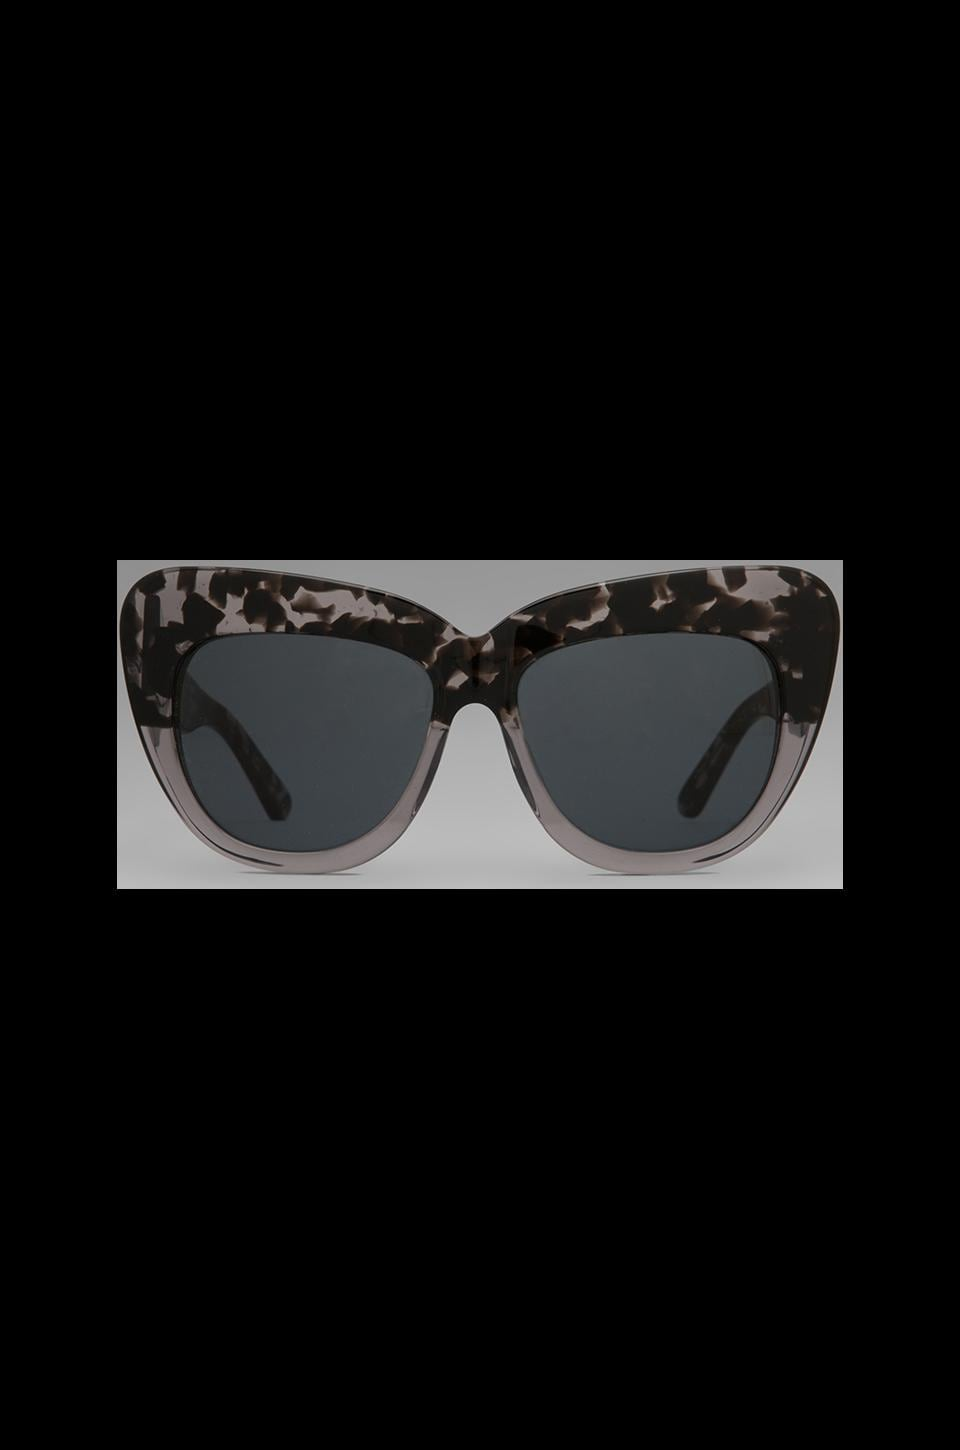 House of Harlow Chelsea Sunglasses in Grey Tortoise